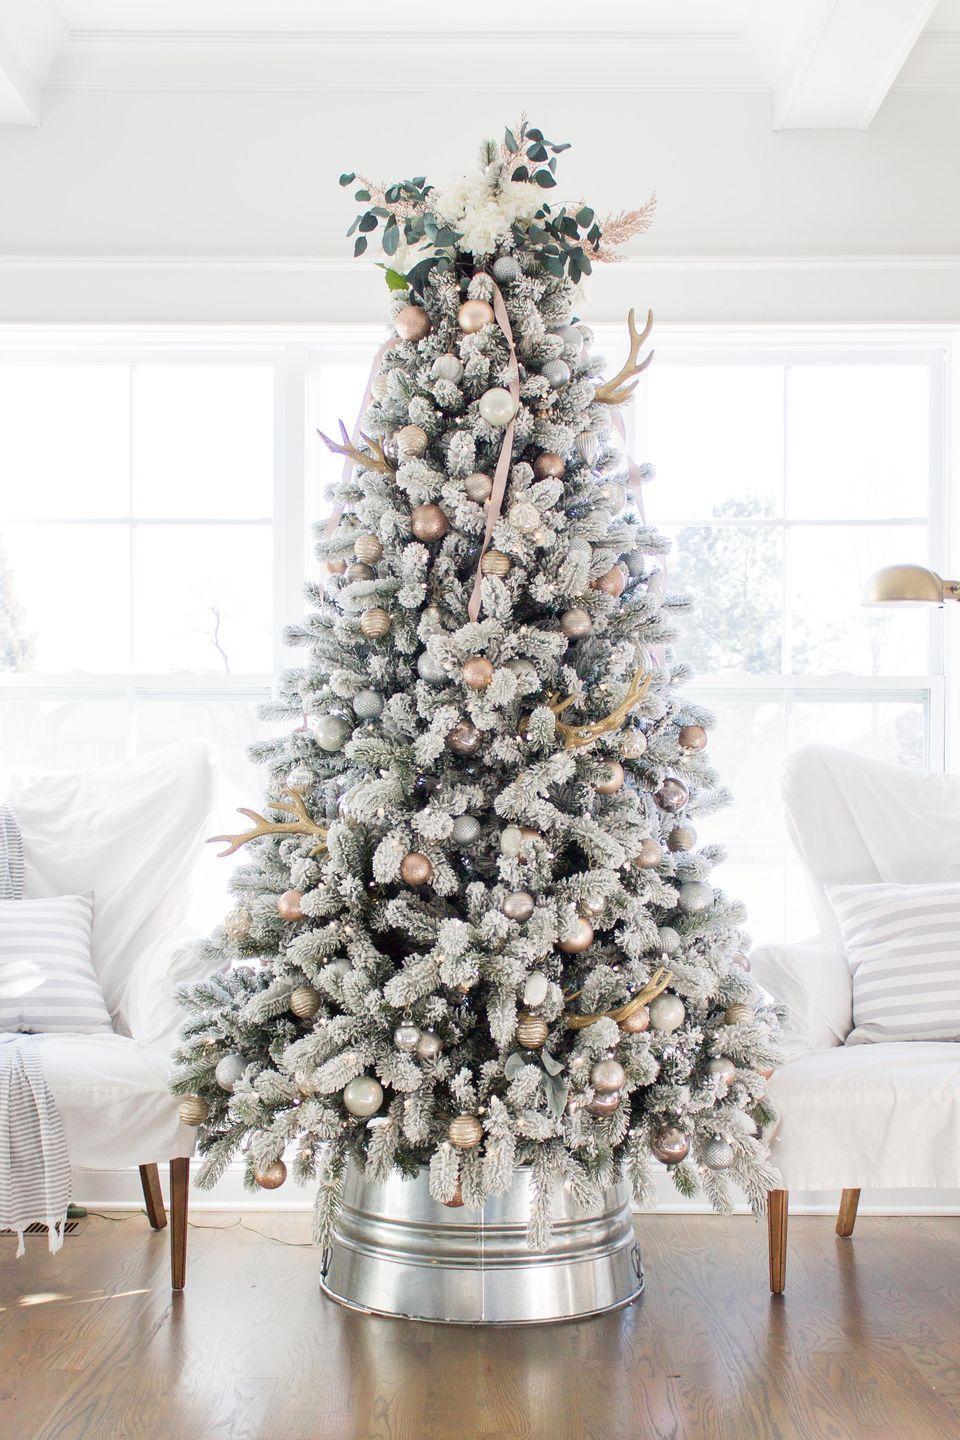 "<p>Why spend oodles when you can create this gorgeous, shiny galvanized collar on your own? It's beautiful in modern or farmhouse-styled rooms. </p><p><strong>Get the tutorial at <a href=""https://aehomestylelife.com/make-designer-inspired-galvanized-christmas-tree-collar-less-30/"" rel=""nofollow noopener"" target=""_blank"" data-ylk=""slk:AE Home Style Life"" class=""link rapid-noclick-resp"">AE Home Style Life</a>.</strong></p><p><a class=""link rapid-noclick-resp"" href=""https://go.redirectingat.com?id=74968X1596630&url=https%3A%2F%2Fwww.homedepot.com%2Fp%2FBehrens-17-Gal-Galvanized-Steel-Round-Tub-3GSX%2F206638138&sref=https%3A%2F%2Fwww.countryliving.com%2Fdiy-crafts%2Fg28746492%2Fdiy-christmas-tree-stands%2F"" rel=""nofollow noopener"" target=""_blank"" data-ylk=""slk:SHOP GALVANIZED TUBS"">SHOP GALVANIZED TUBS</a></p>"